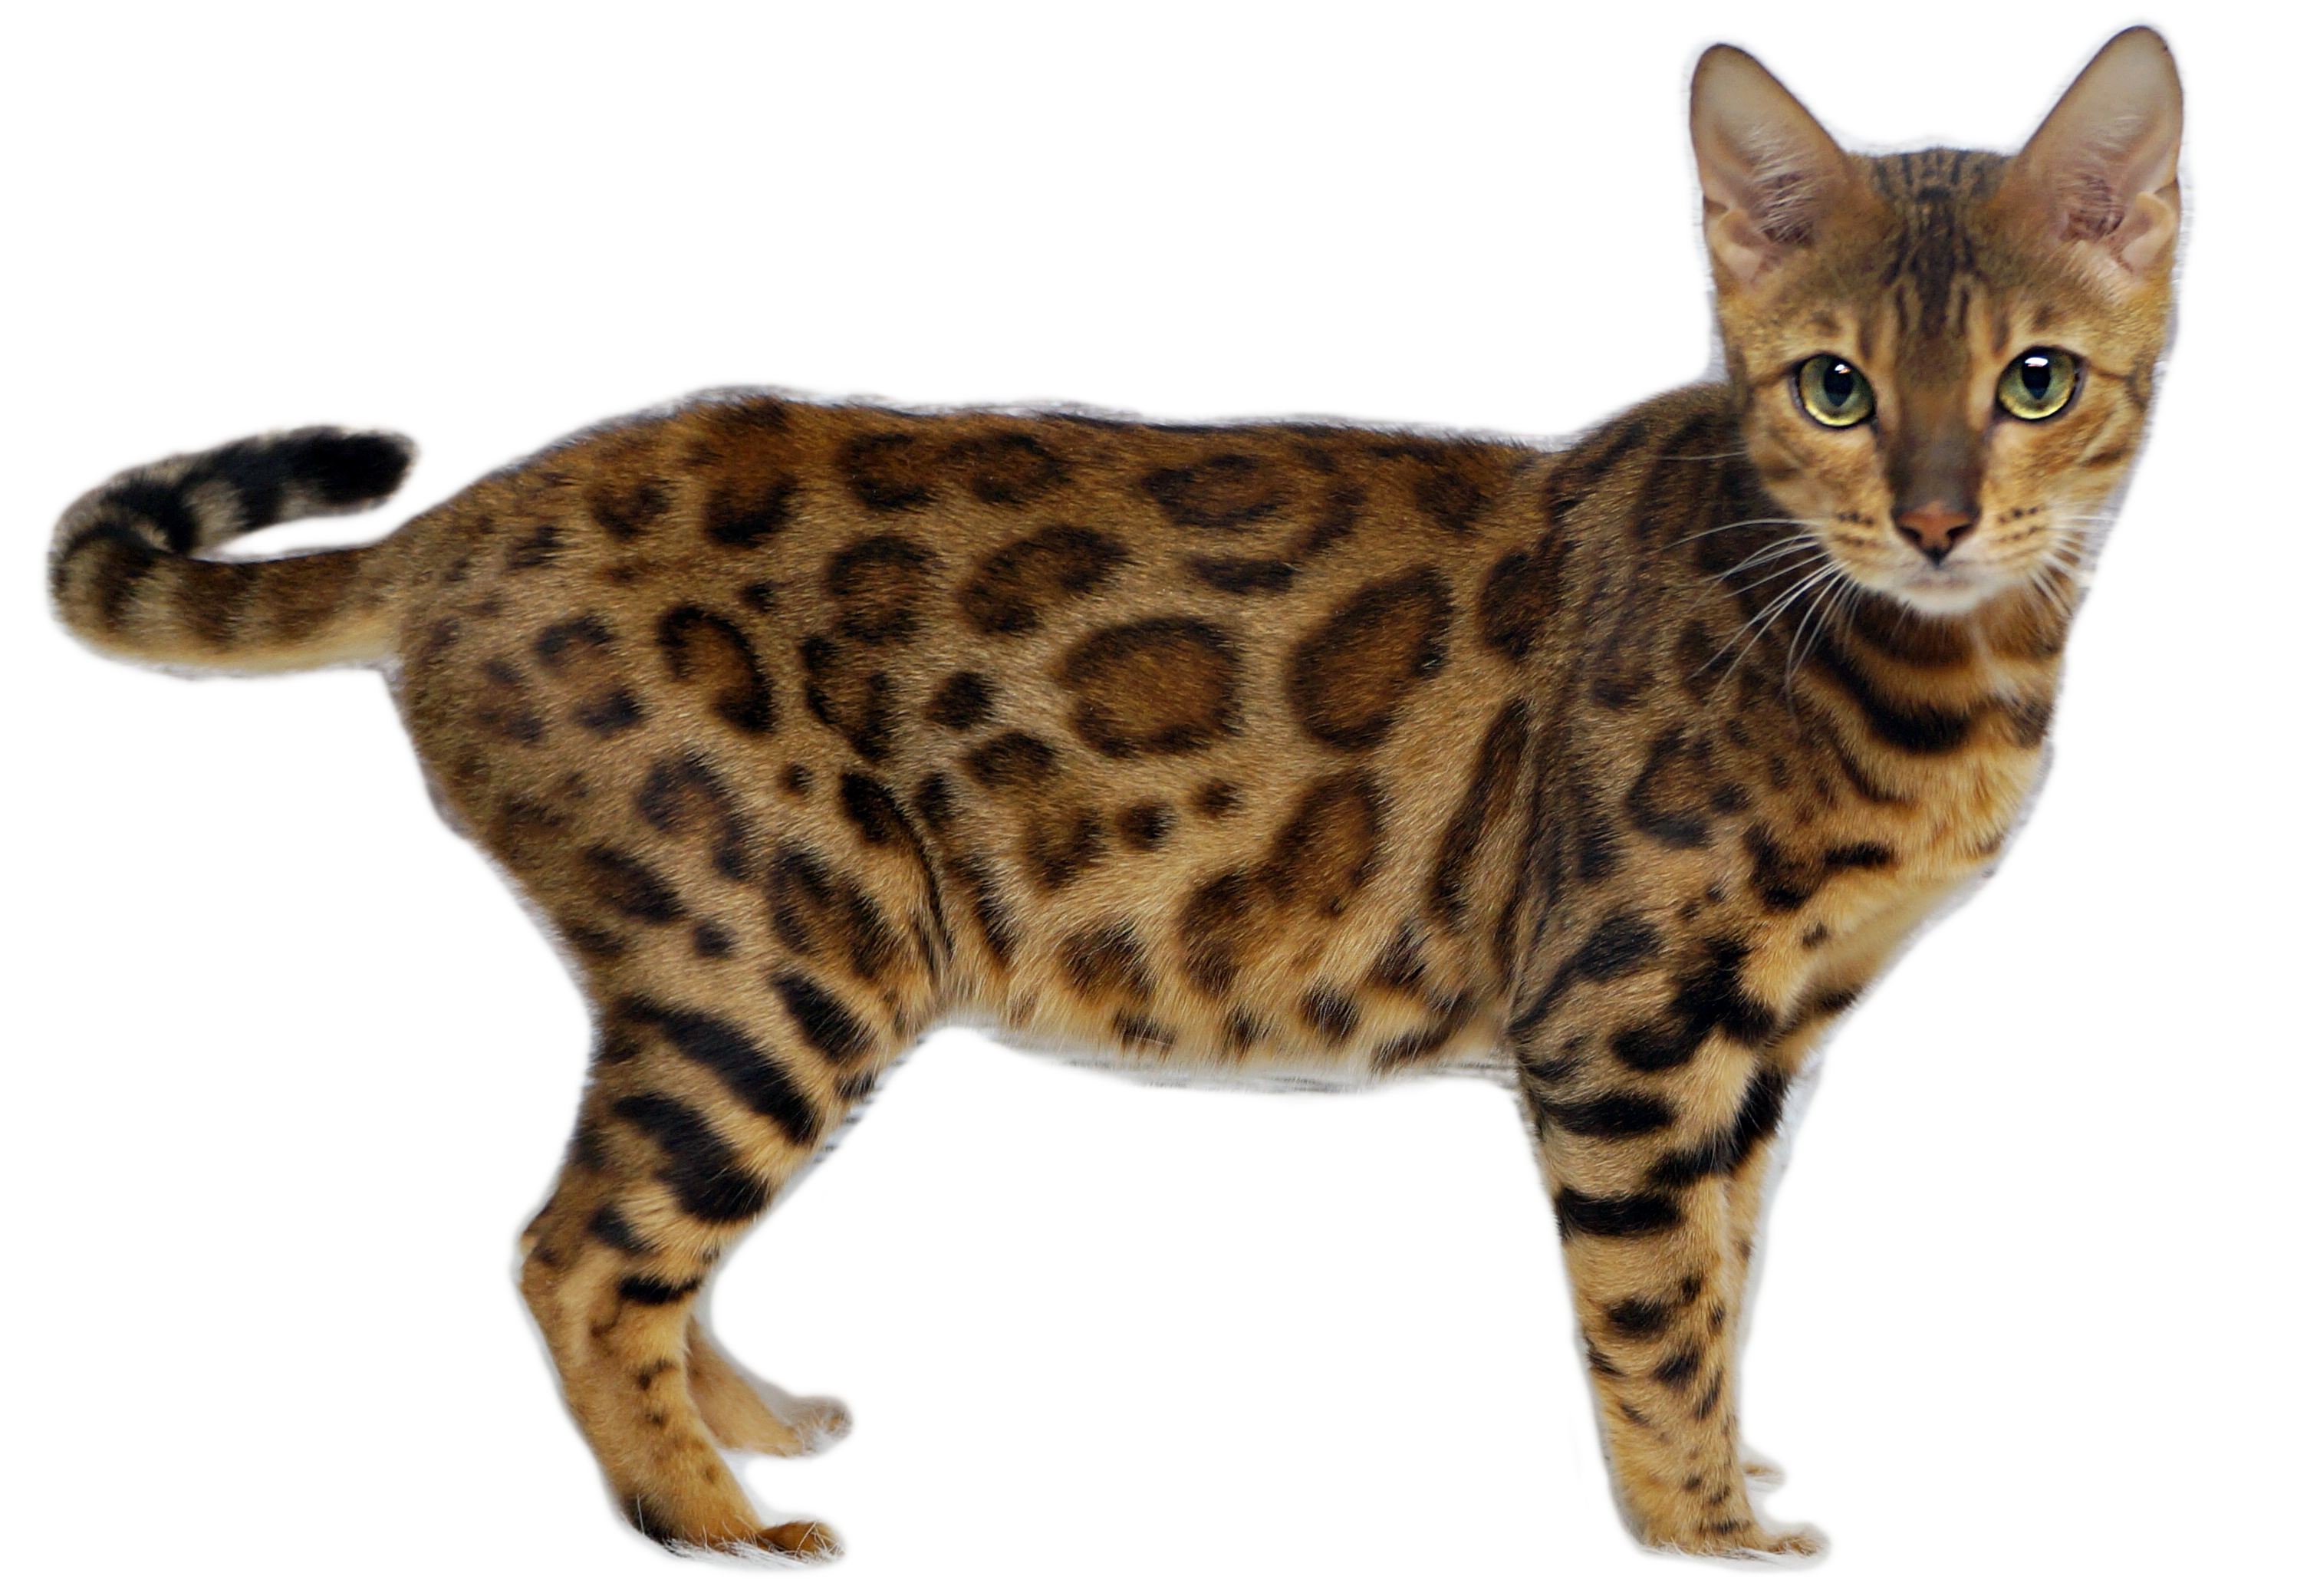 Harmony eleanorcats bengal brown spotted rosettes